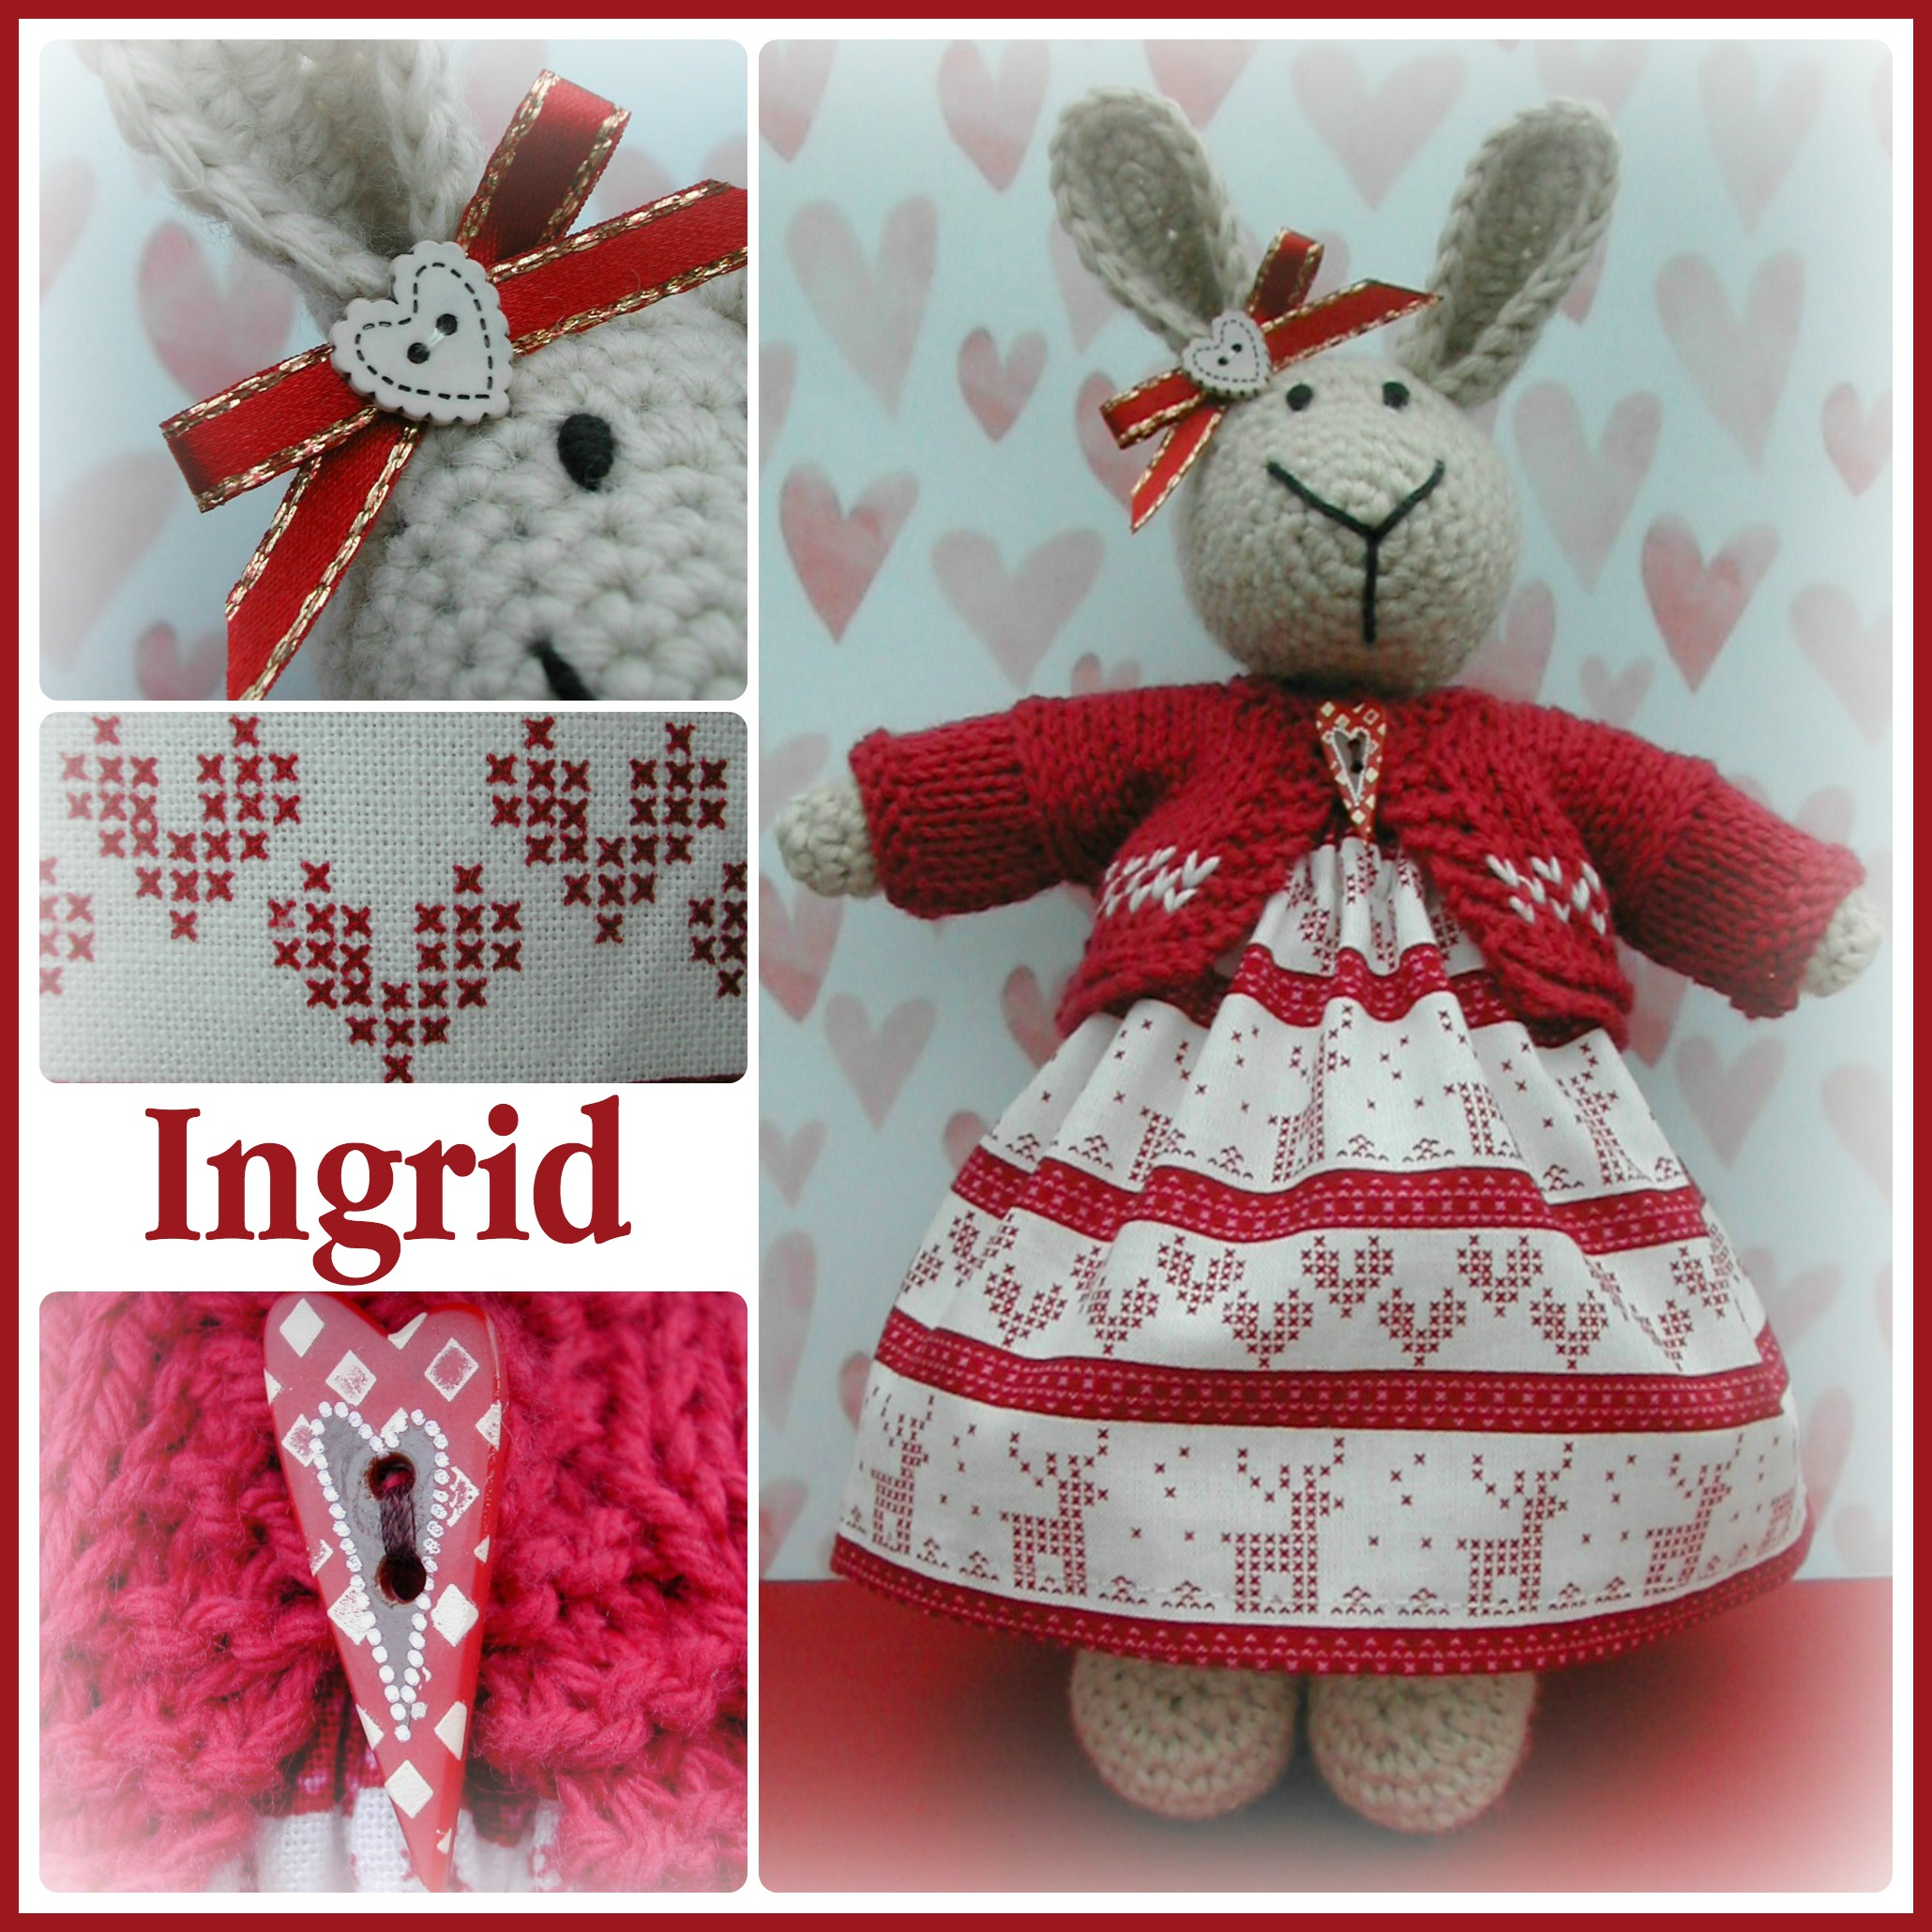 ingrid-collage